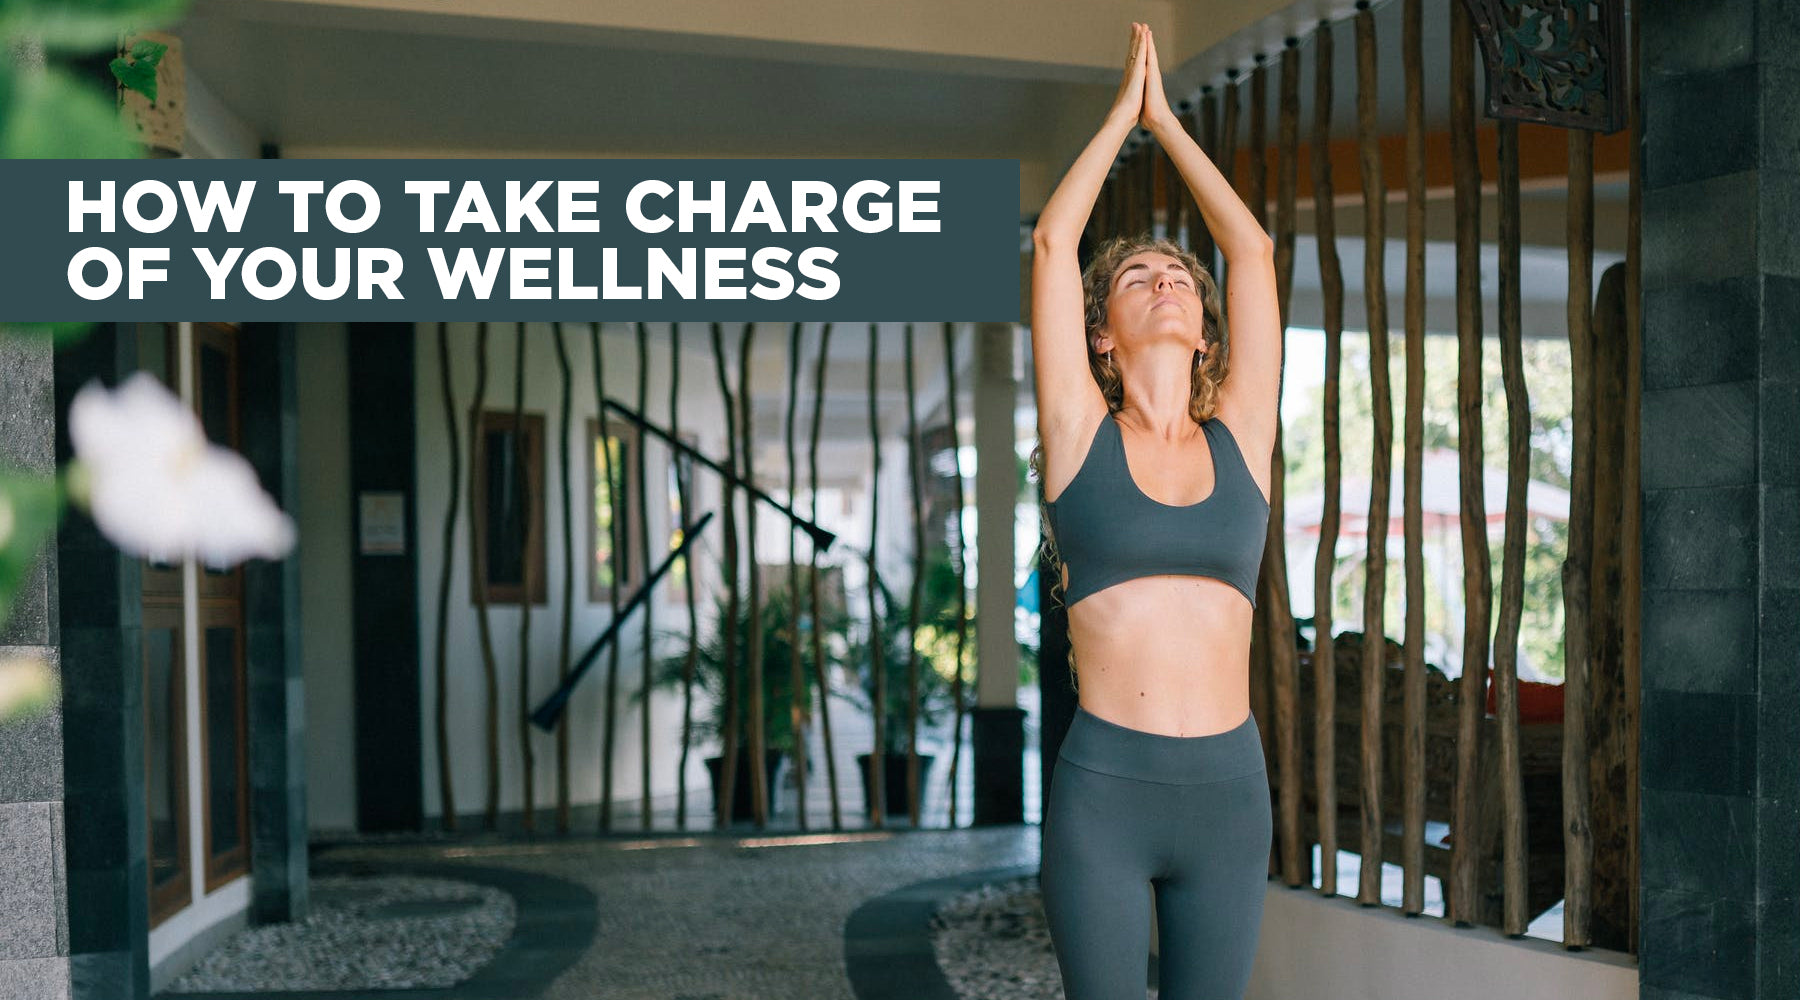 How to Take Charge of Your Wellness